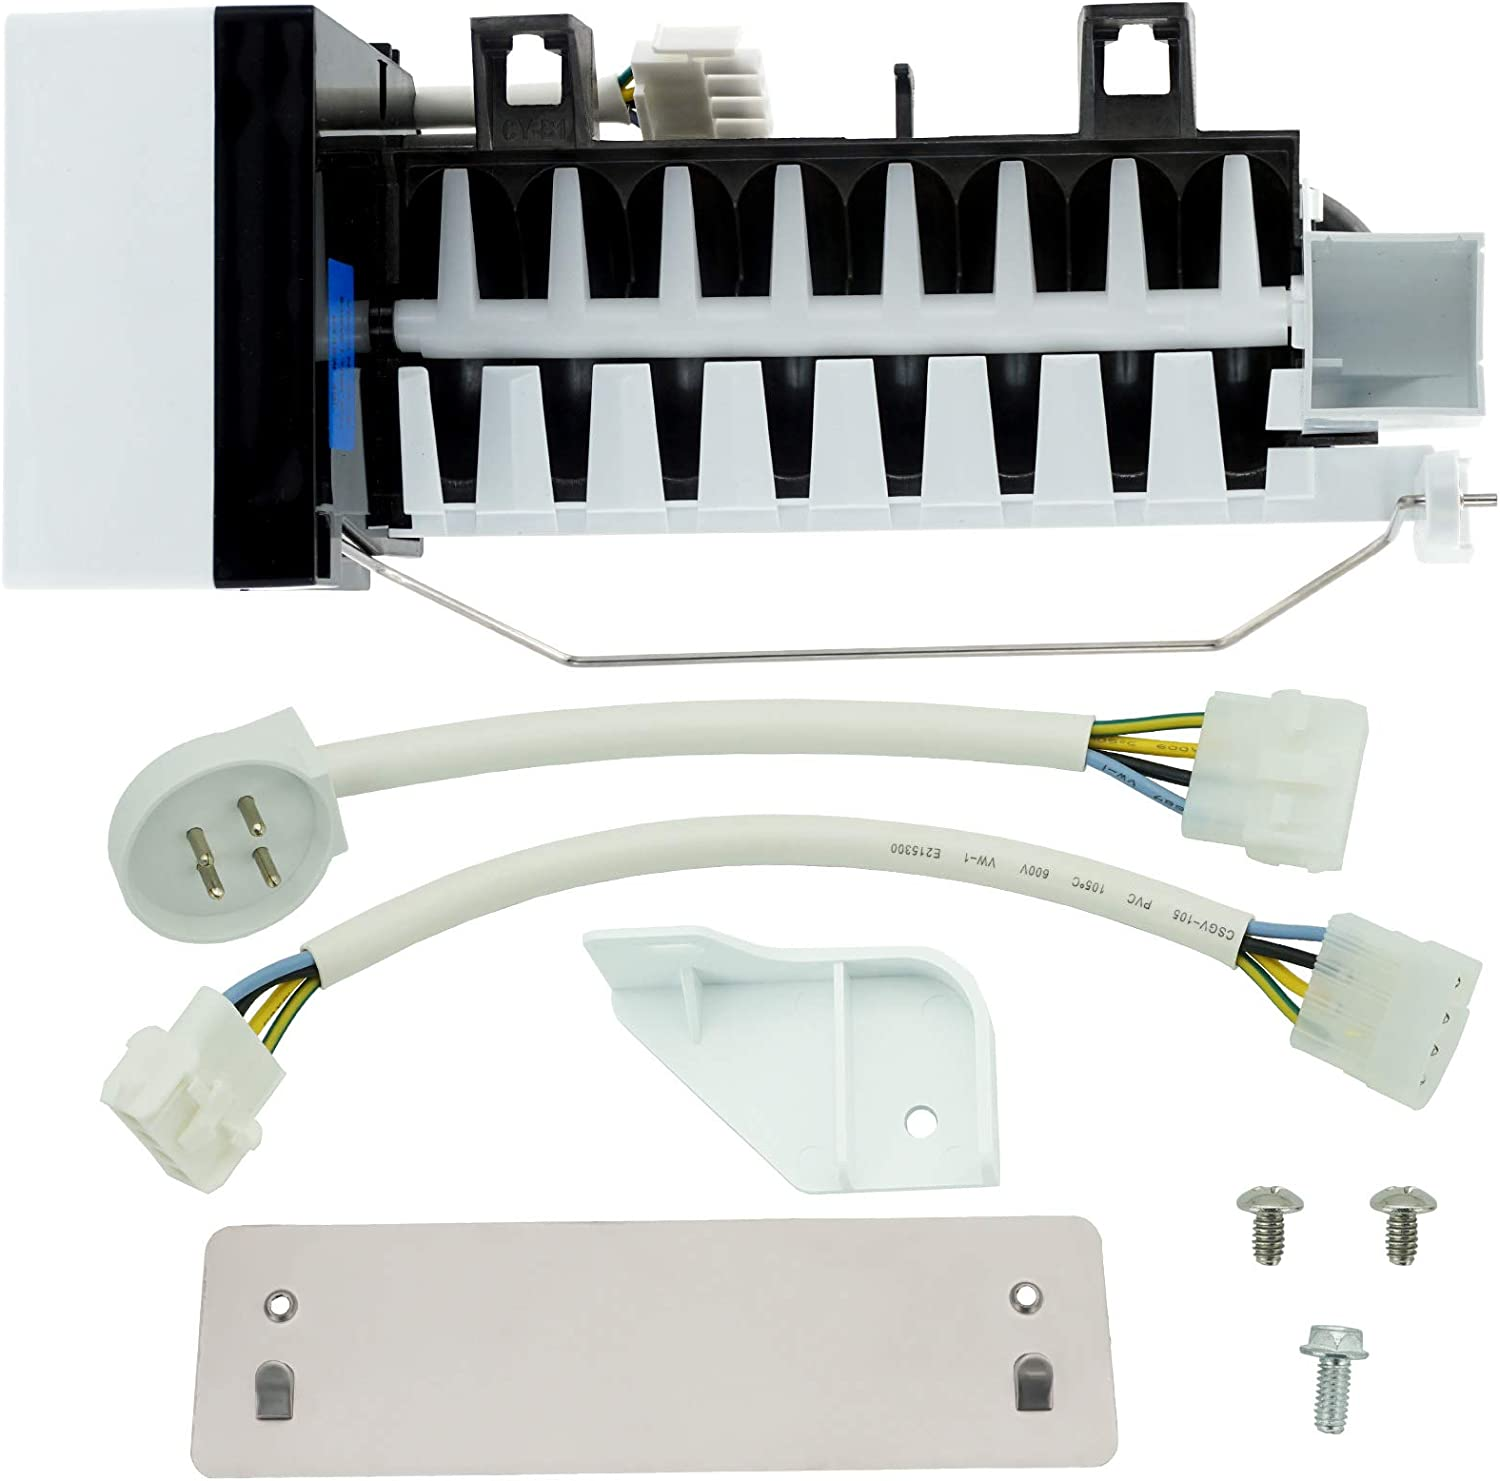 Siwdoy 4317943 Refrigerator Ice Maker Kit Compatible with Whirlp